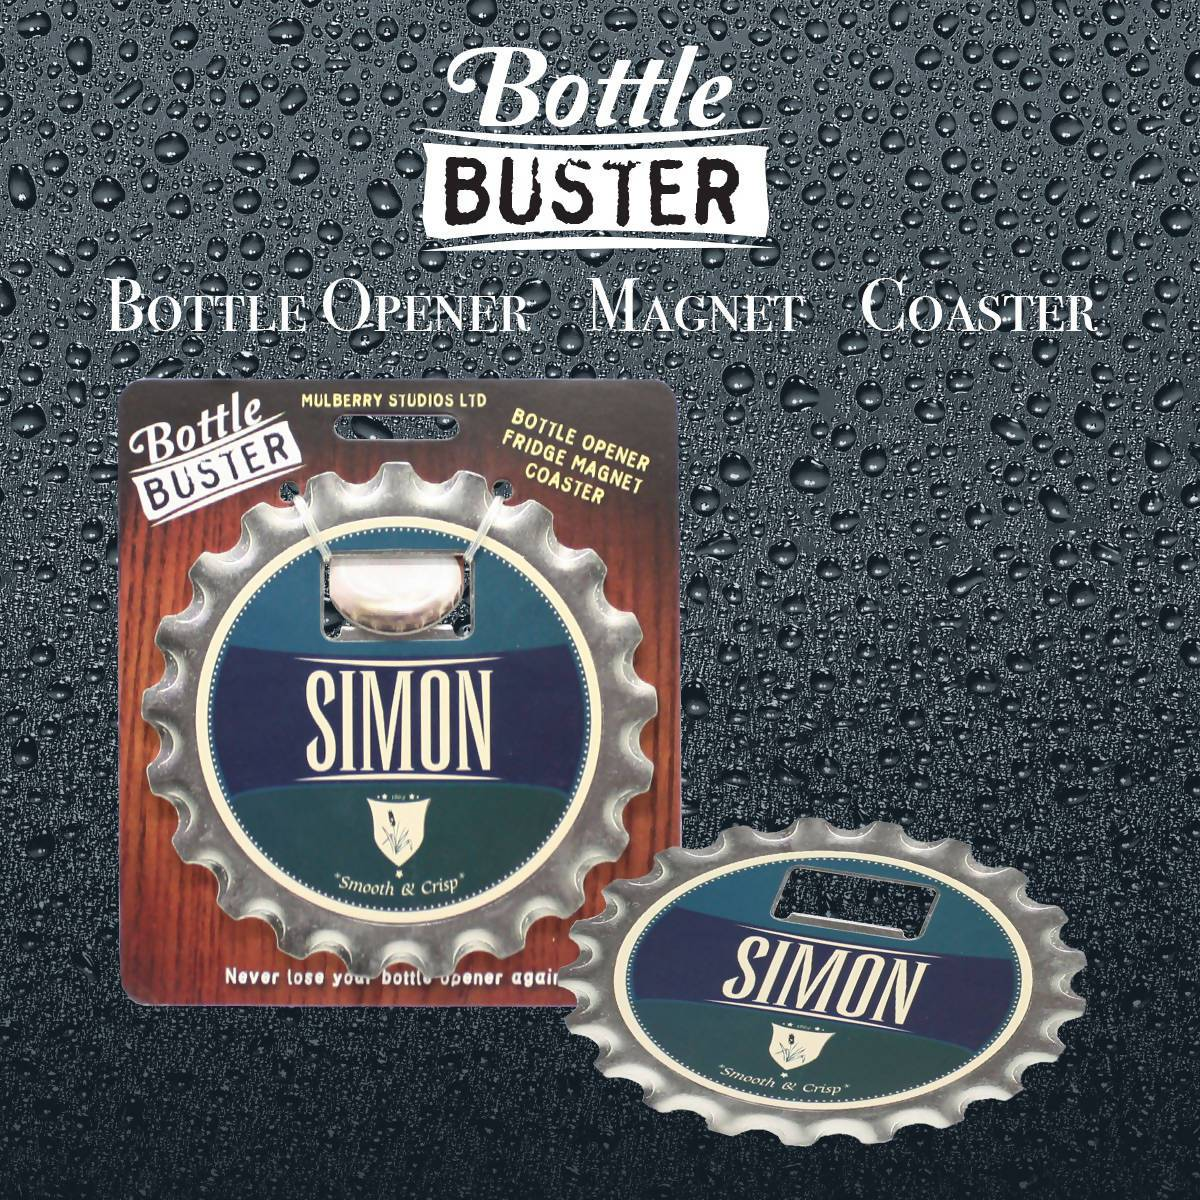 BOTTLE BUSTER - Best Bottle Opener : Simon - Bottle Openers - La Belle Collection - Naiise